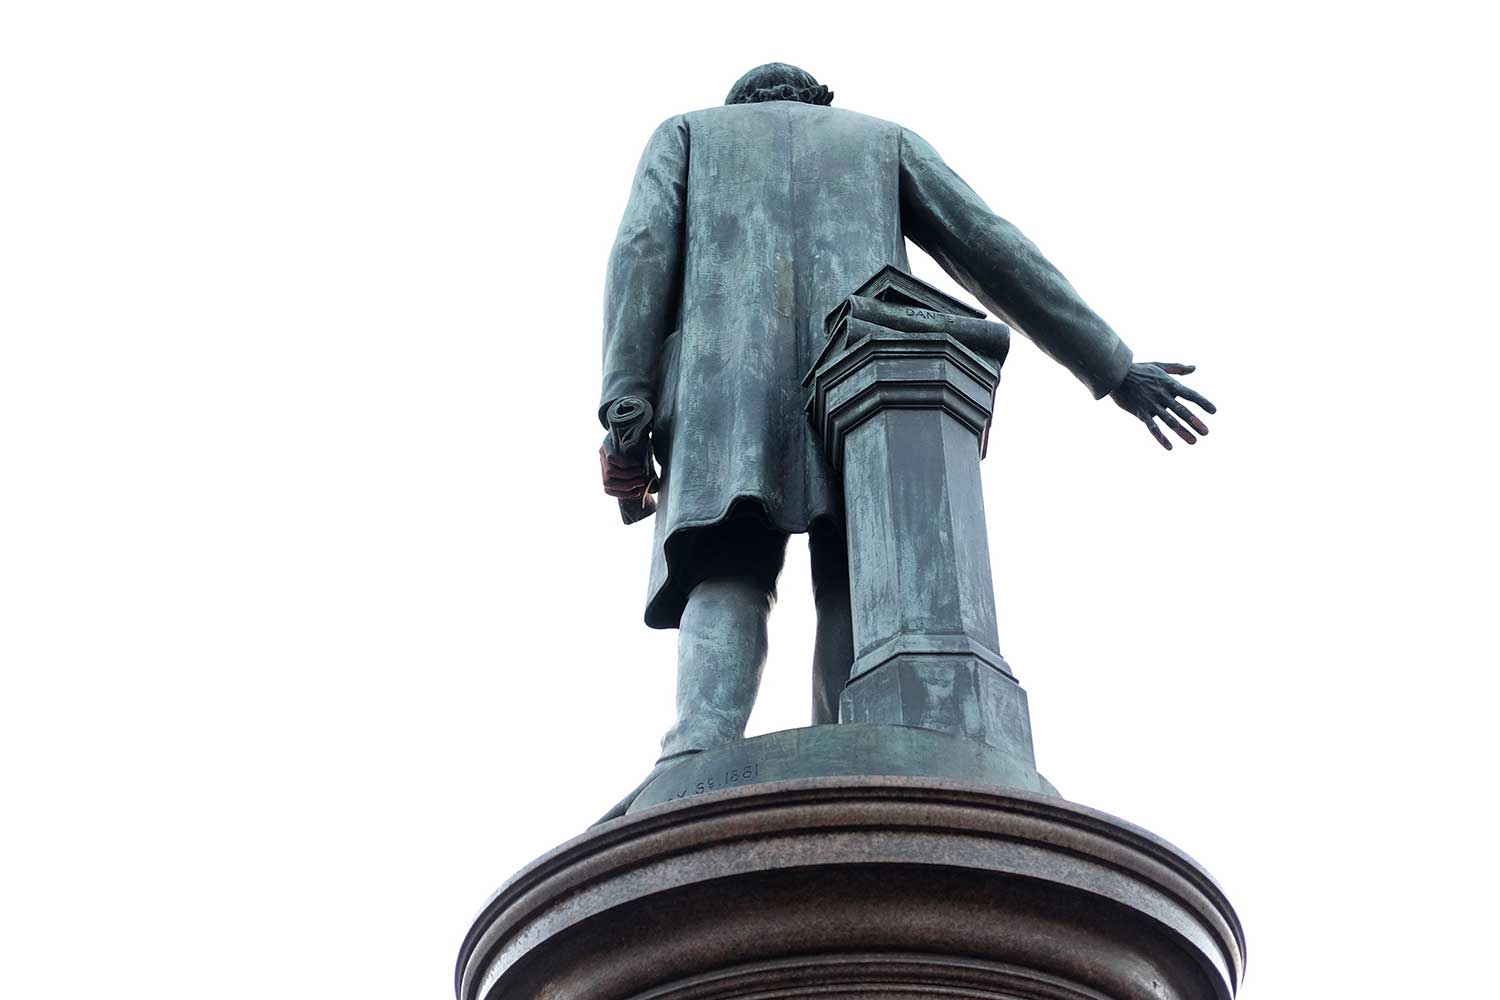 William Gladstone statue from behind